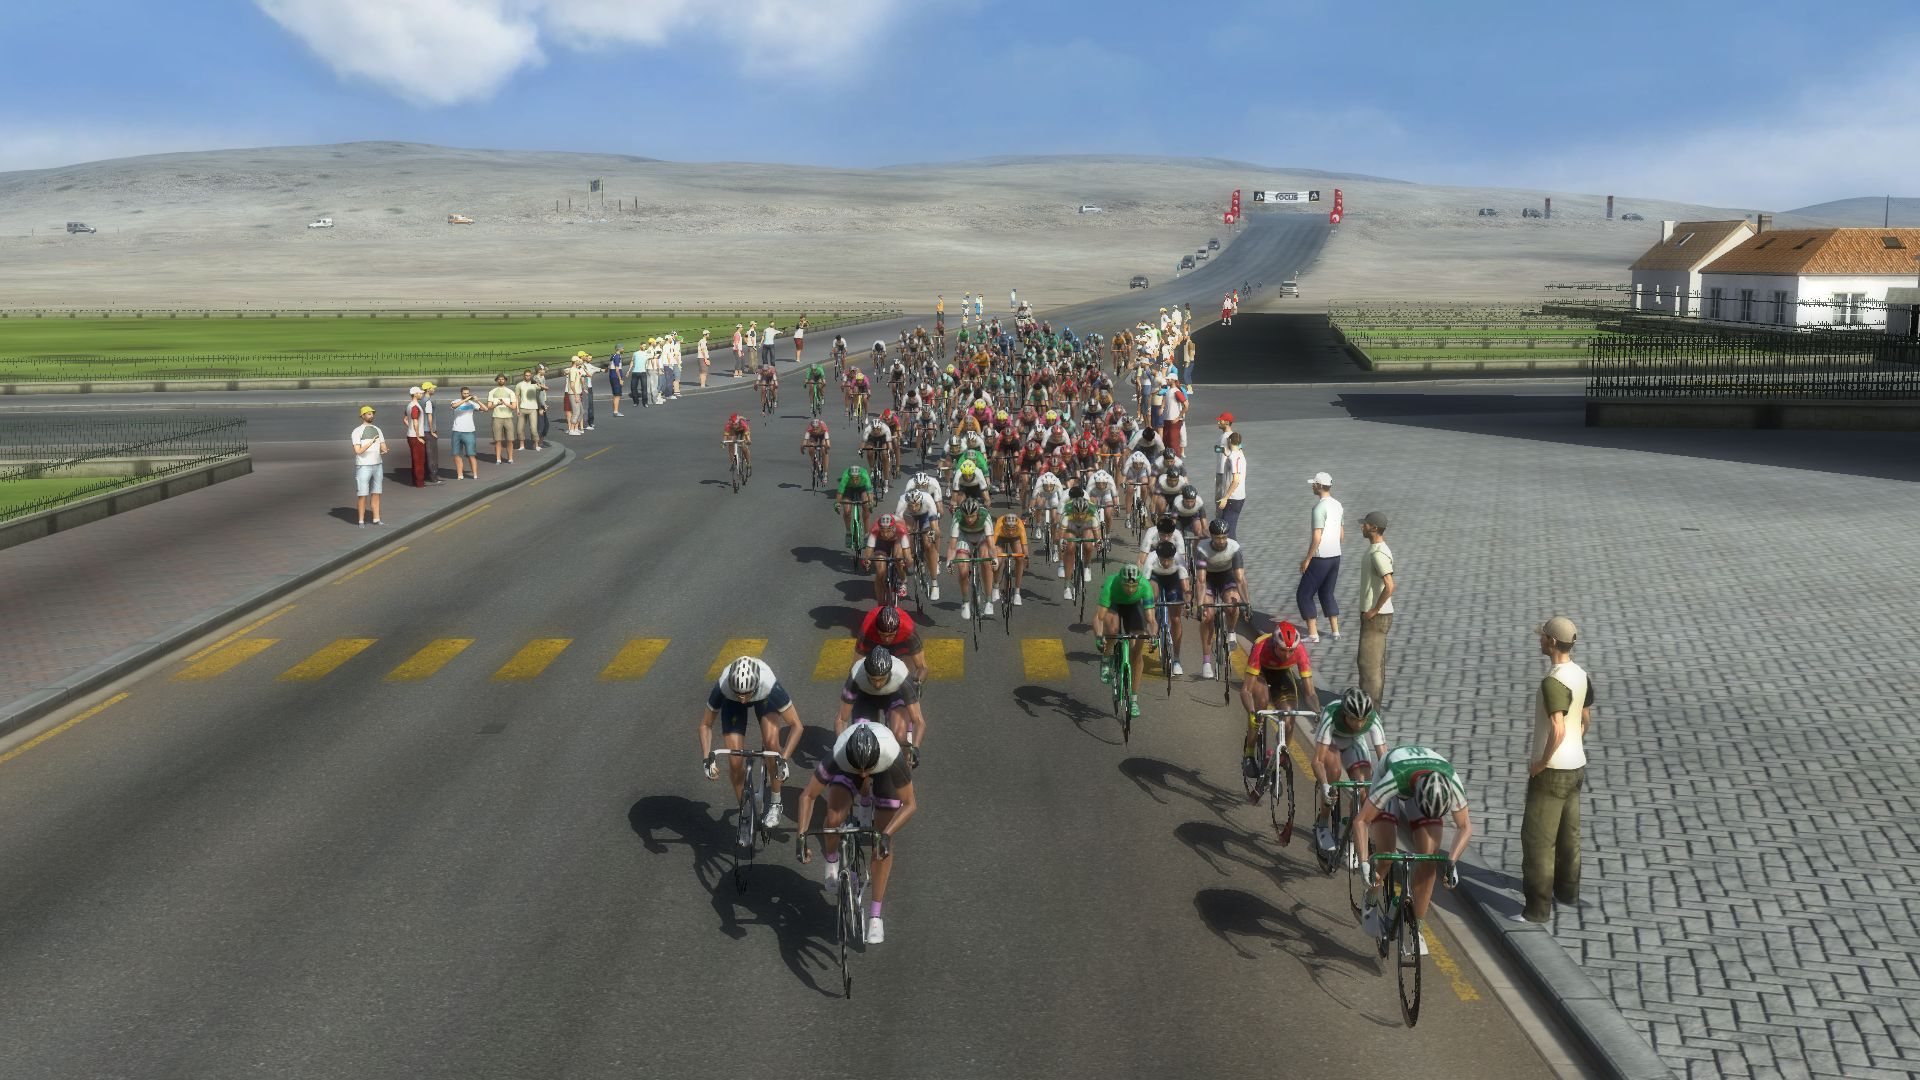 pcmdaily.com/images/mg/2019/Races/C2HC/Eritrea/TOES1%2015.jpg